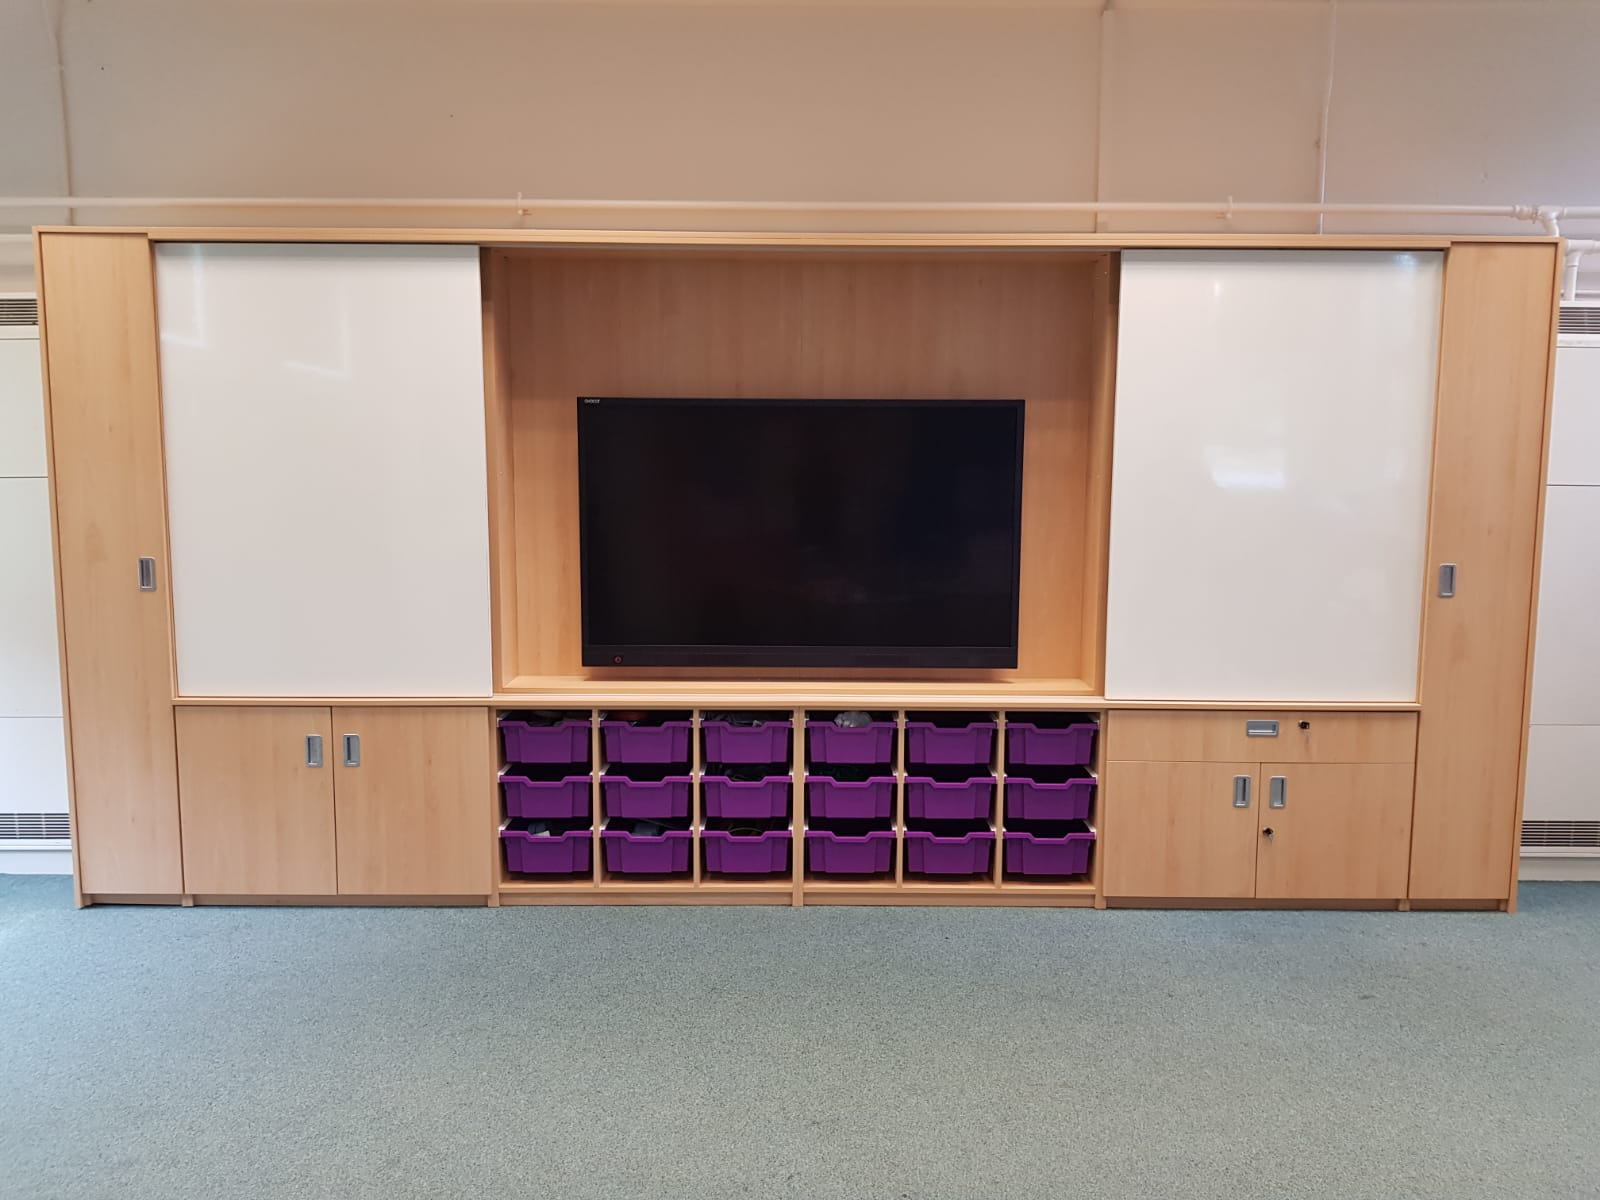 Witley Jones Furniture install teaching wall at Hollymount School